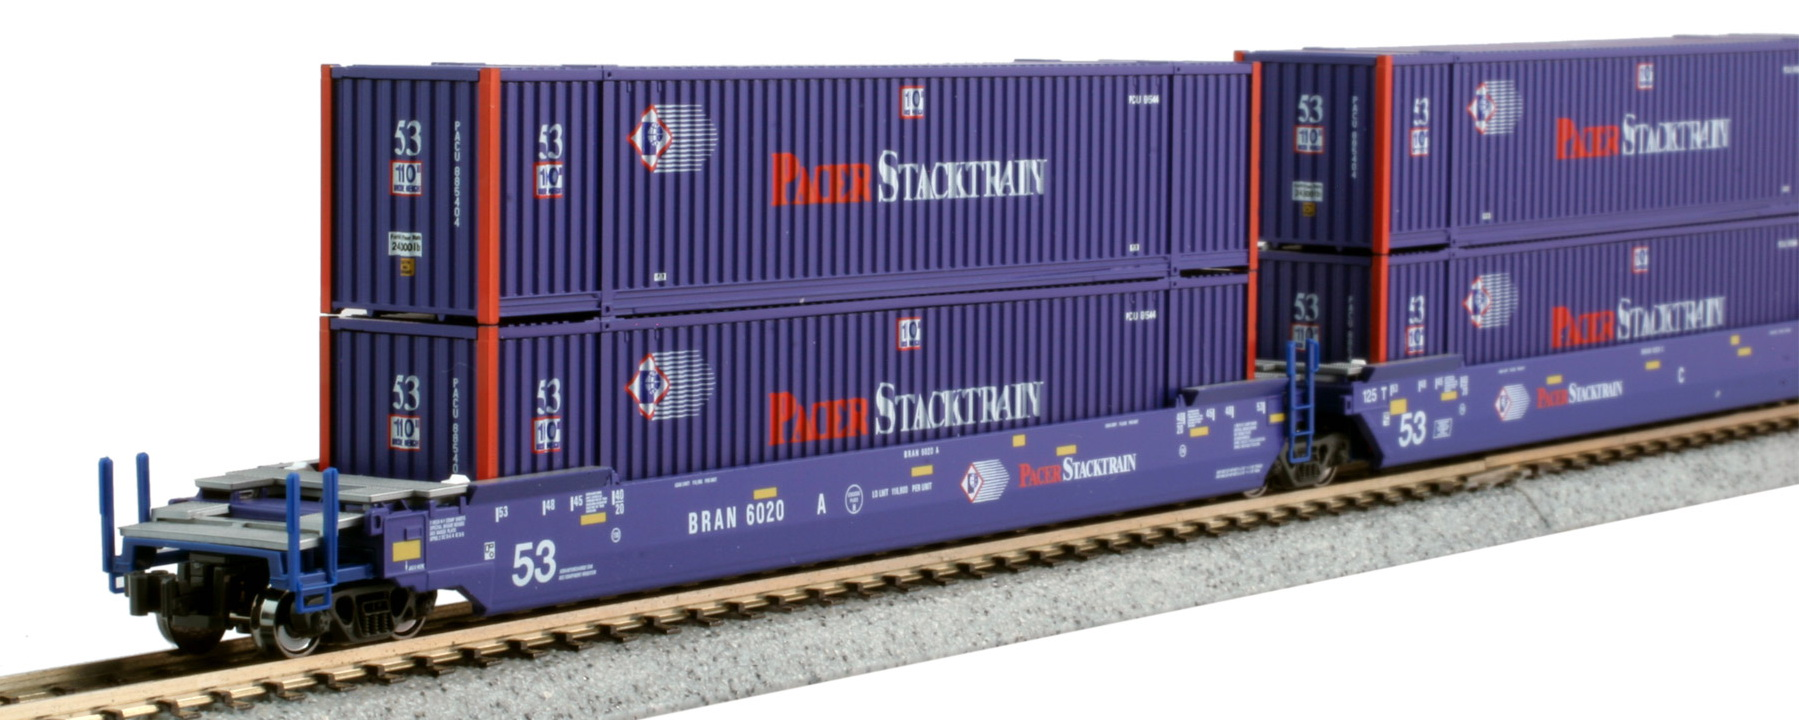 N Scale - Kato USA - 106-6179 - Container Car, Articulated Well, Gunderson Maxi-Stack IV - Pacer StackTrain - 6020